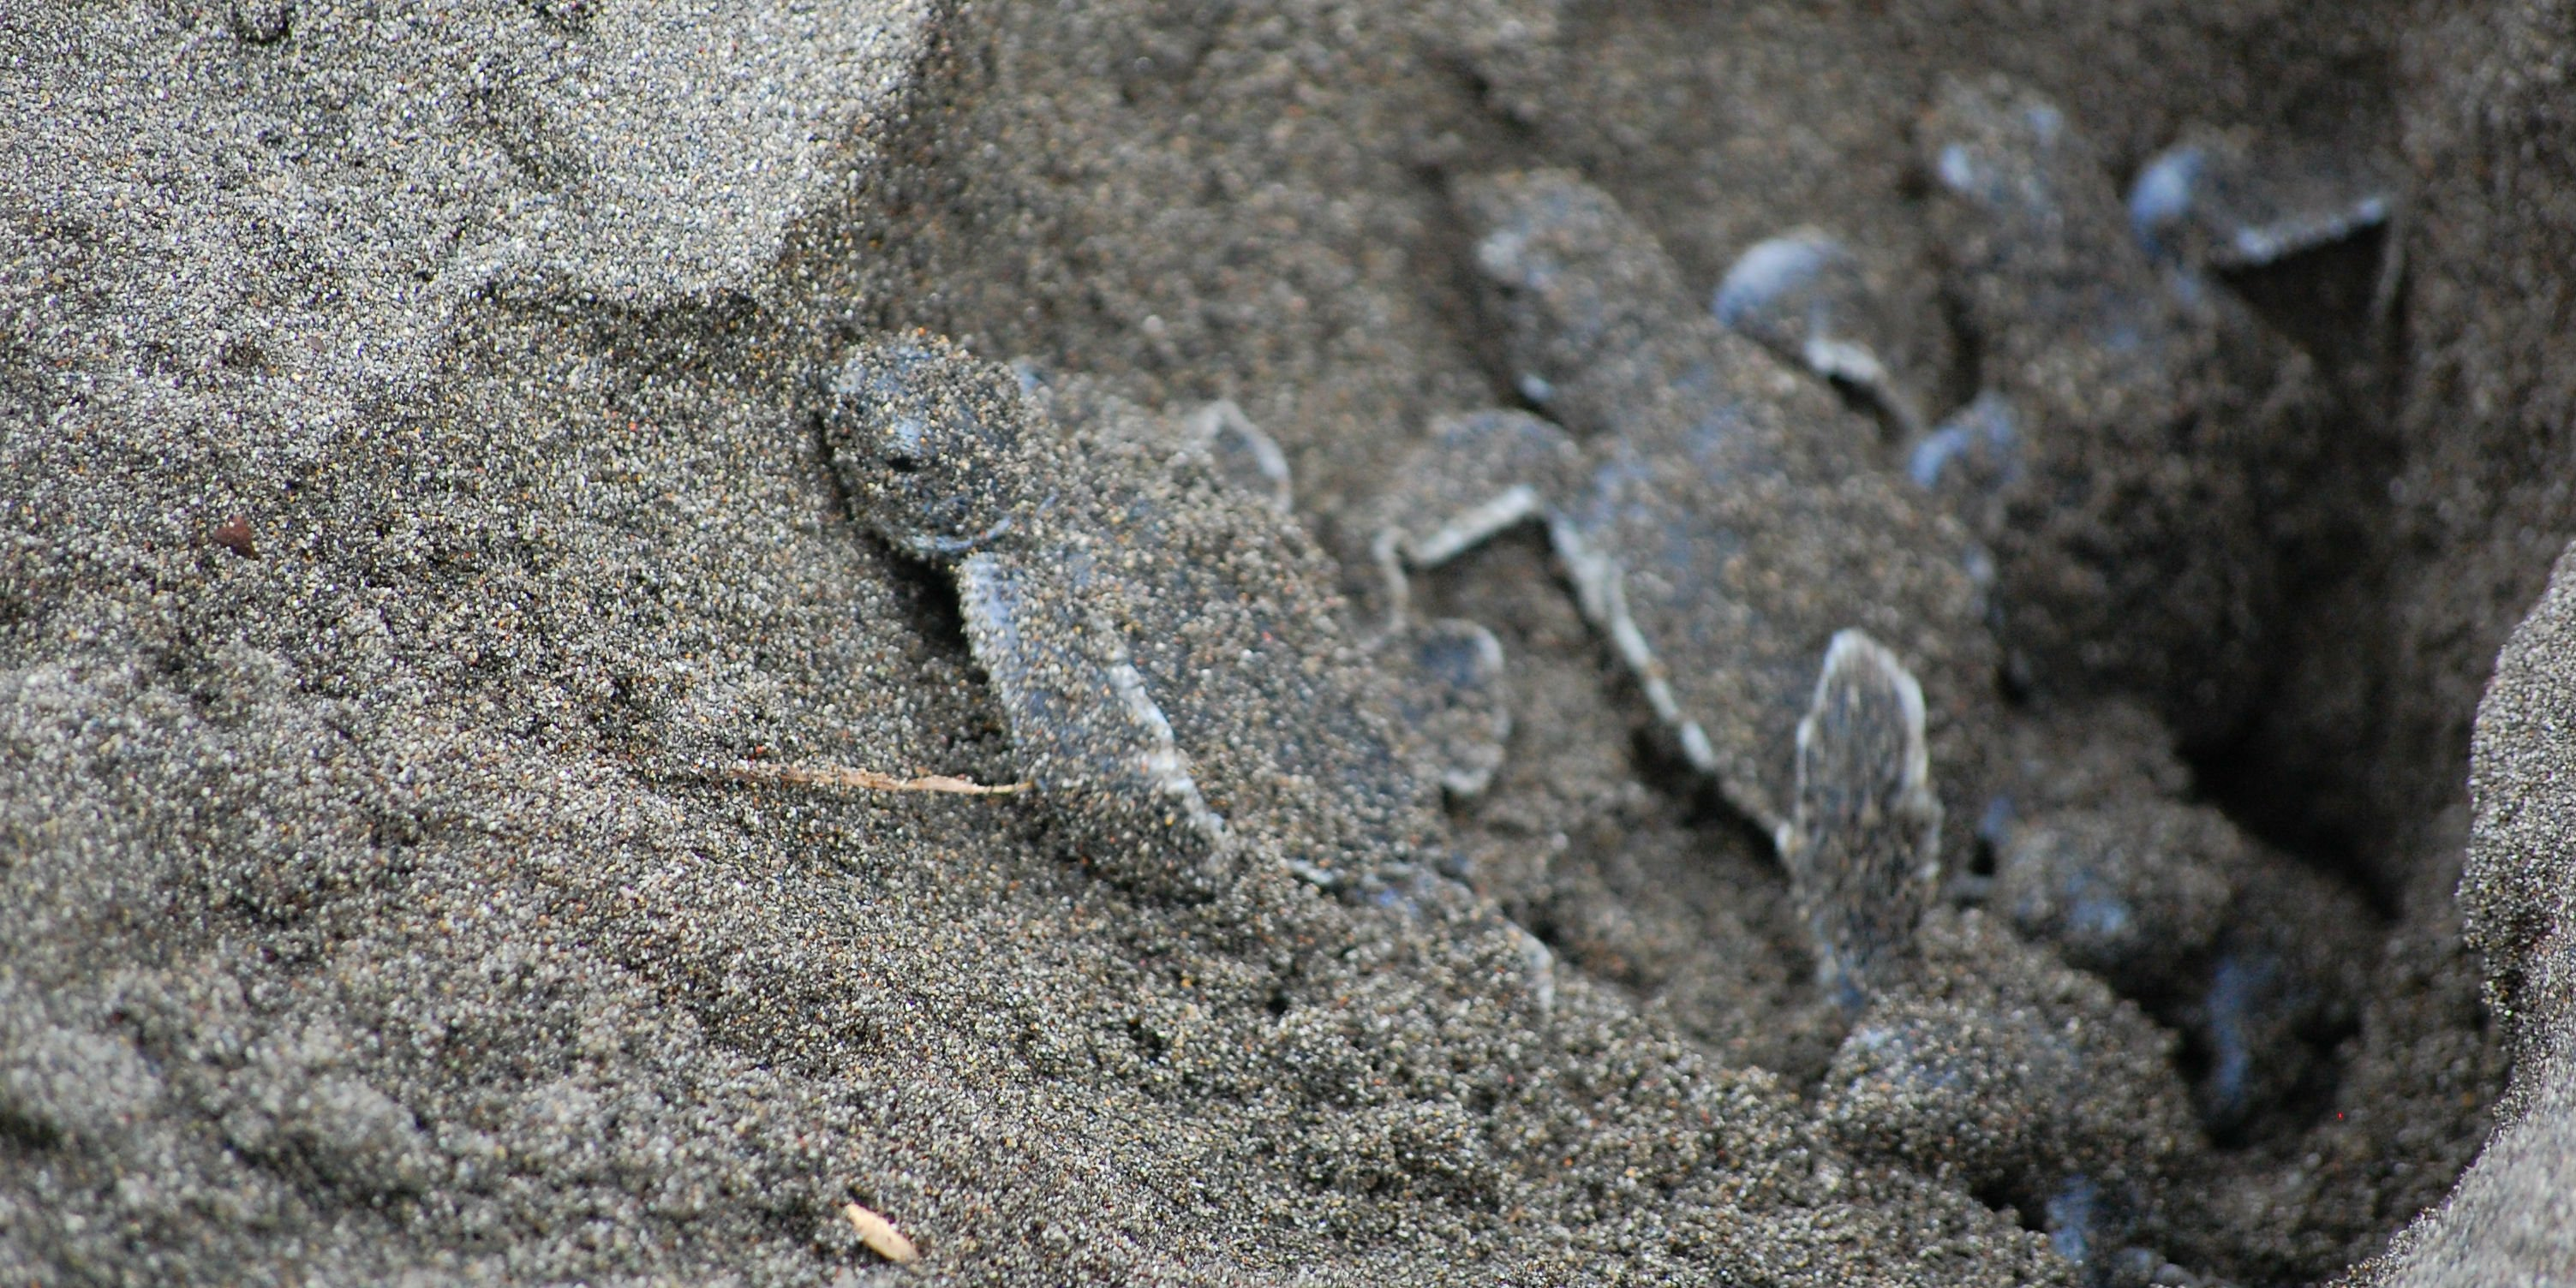 Sea turtle hatchlings climb out of their nest in Costa Rica. Sea turtle conservation volunteers will monitor their progress.